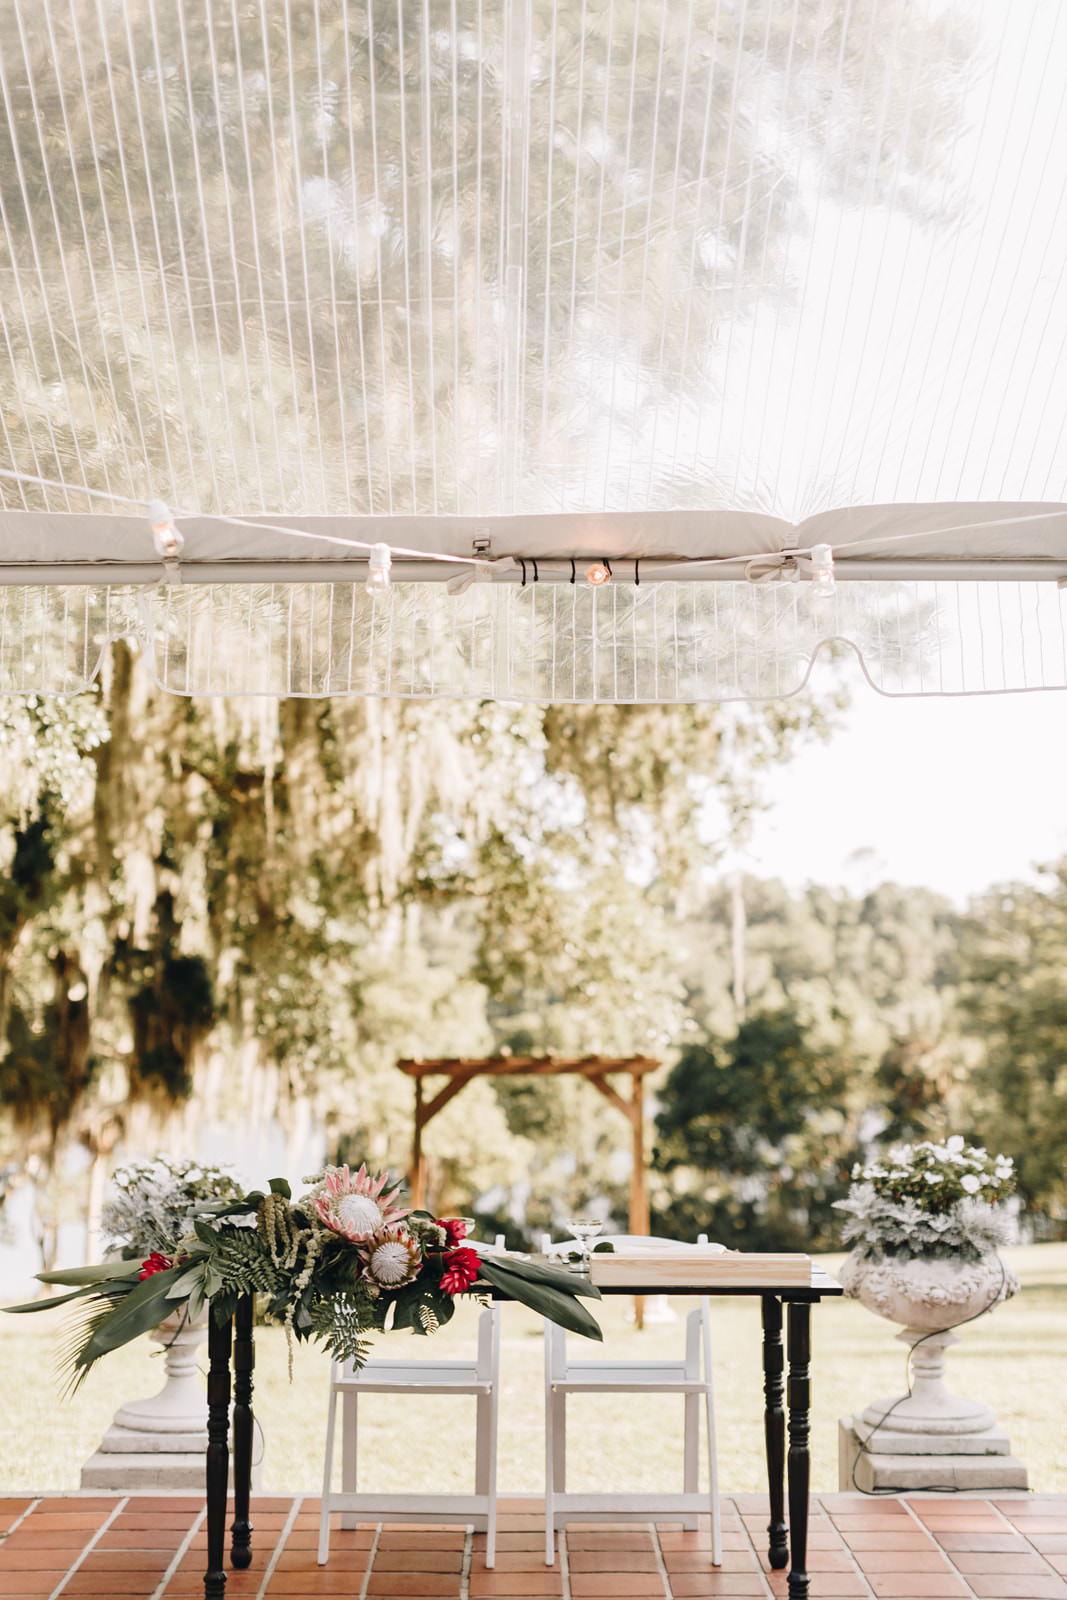 Sweetheart table with a large arrangement of greenery and flowers on the right side of the table.